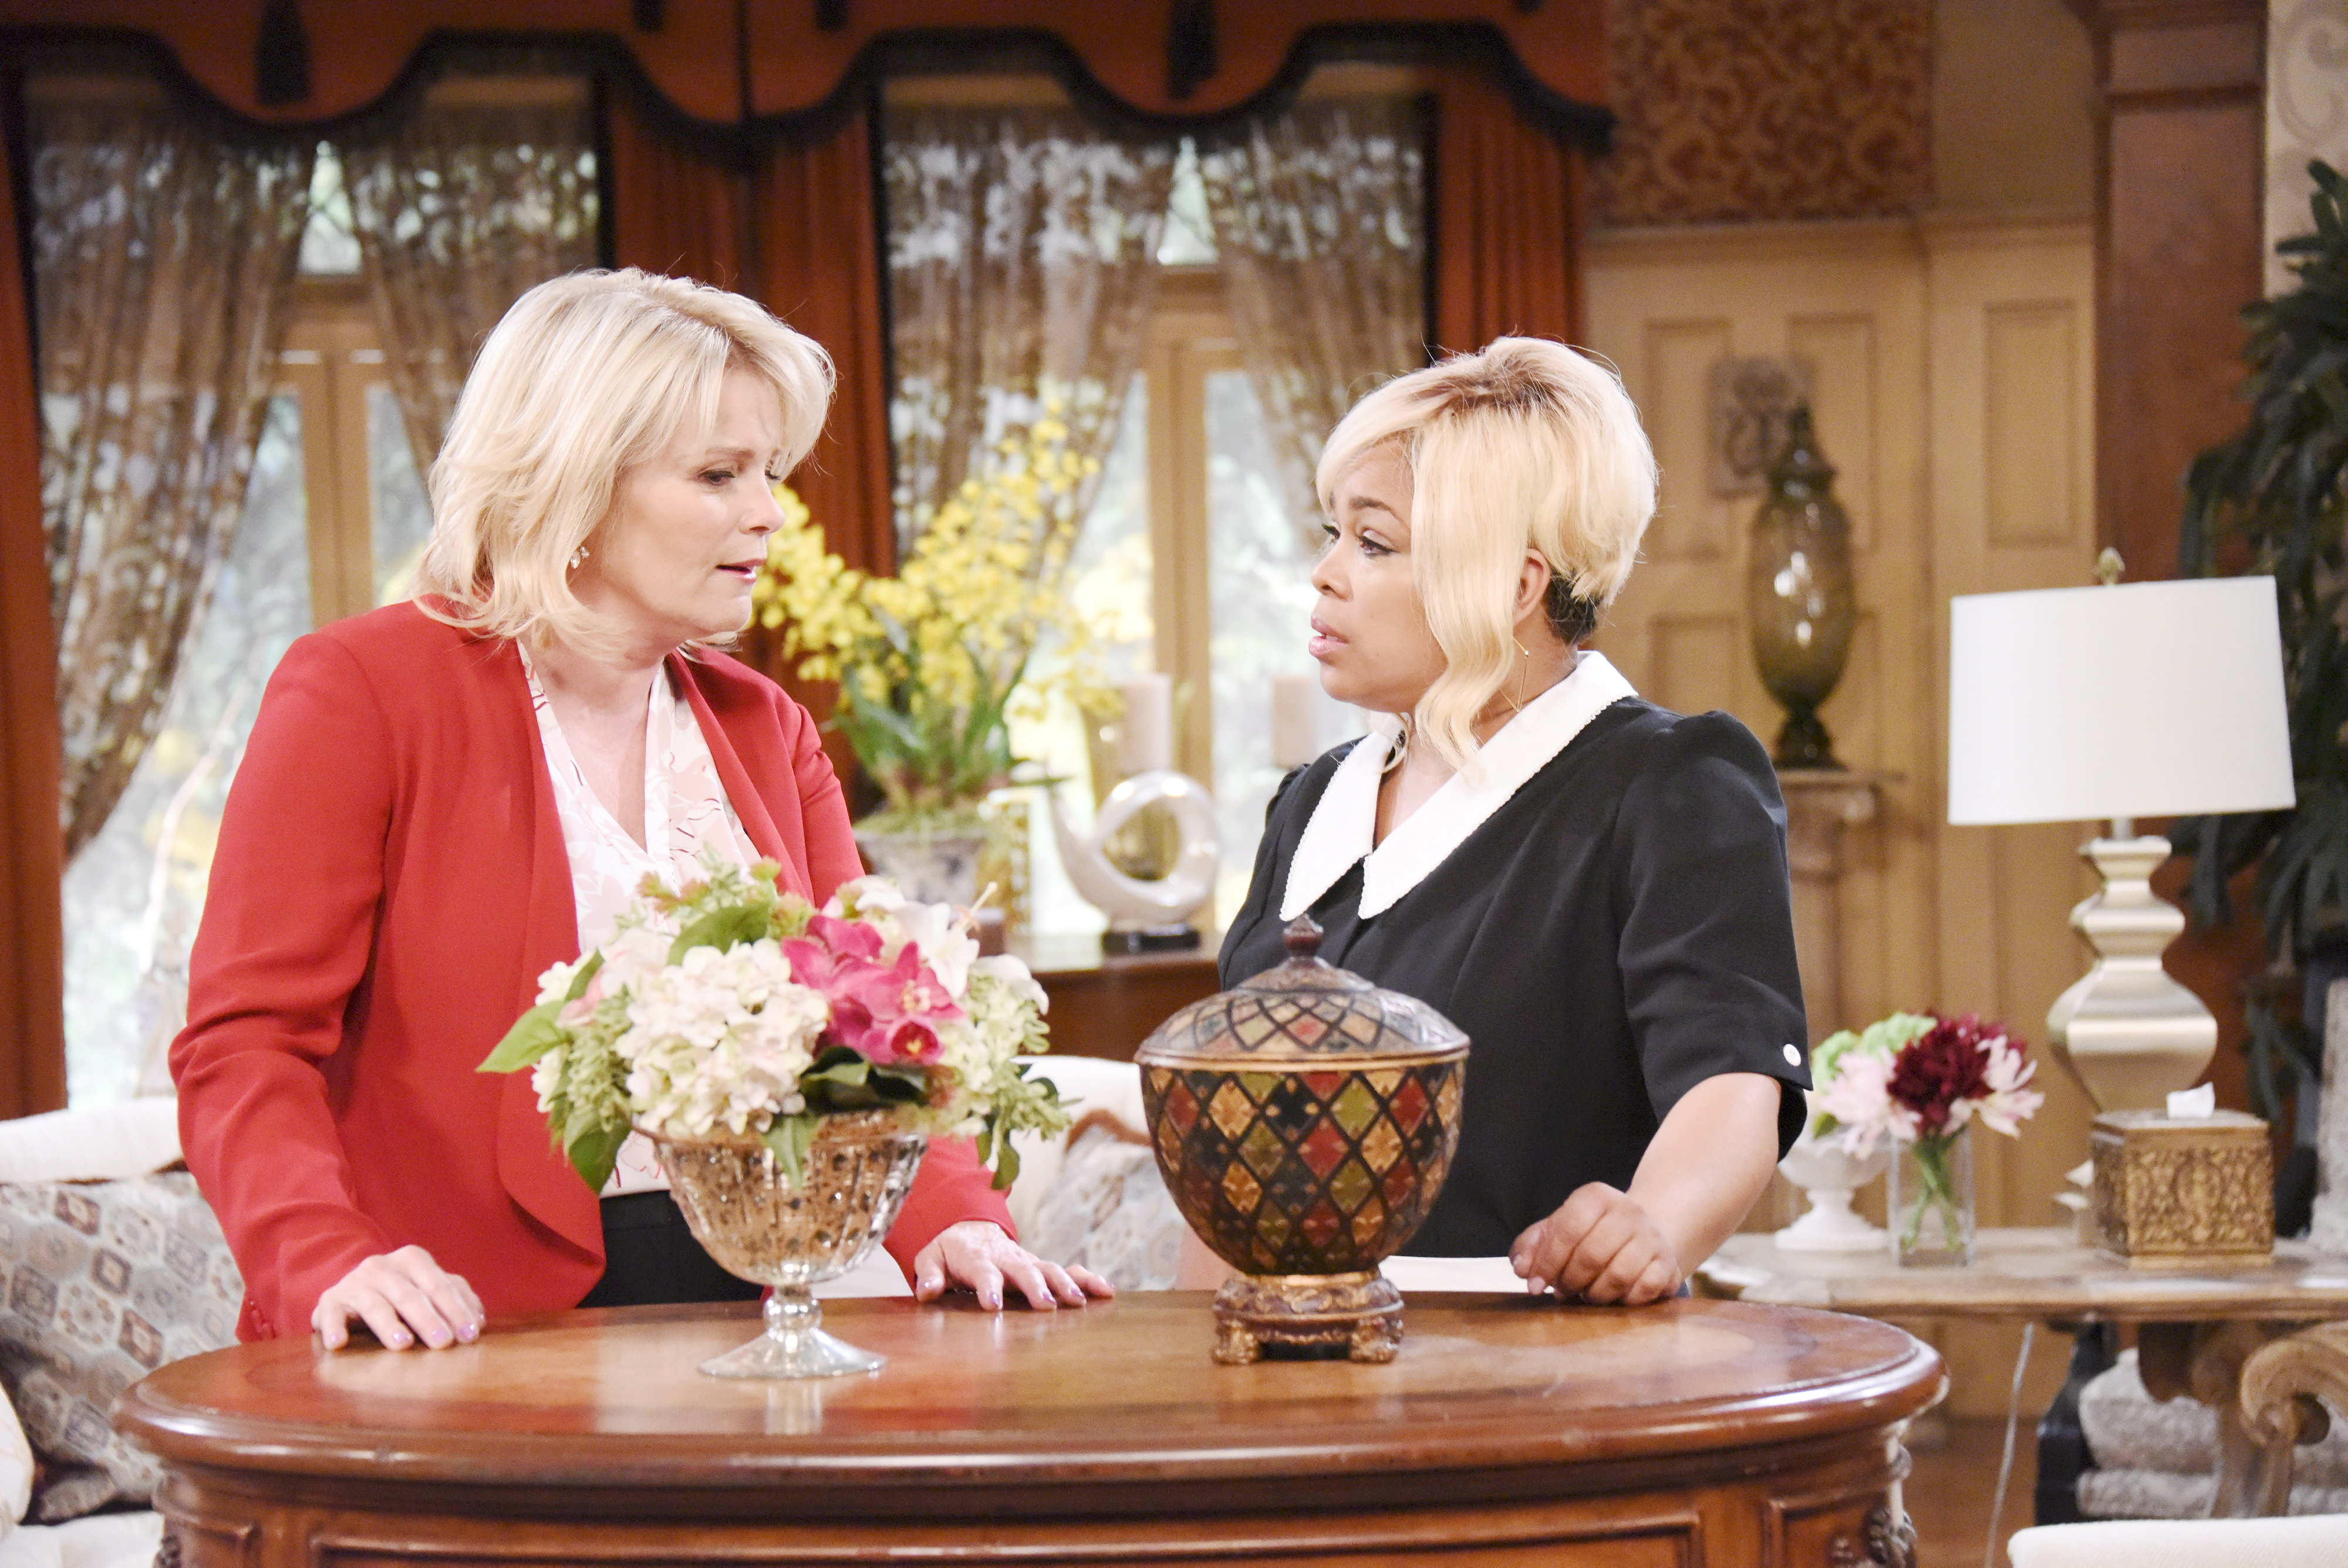 Days Of Our Lives Spoilers: •Bonnie and Sheila prepare to flee Salem.